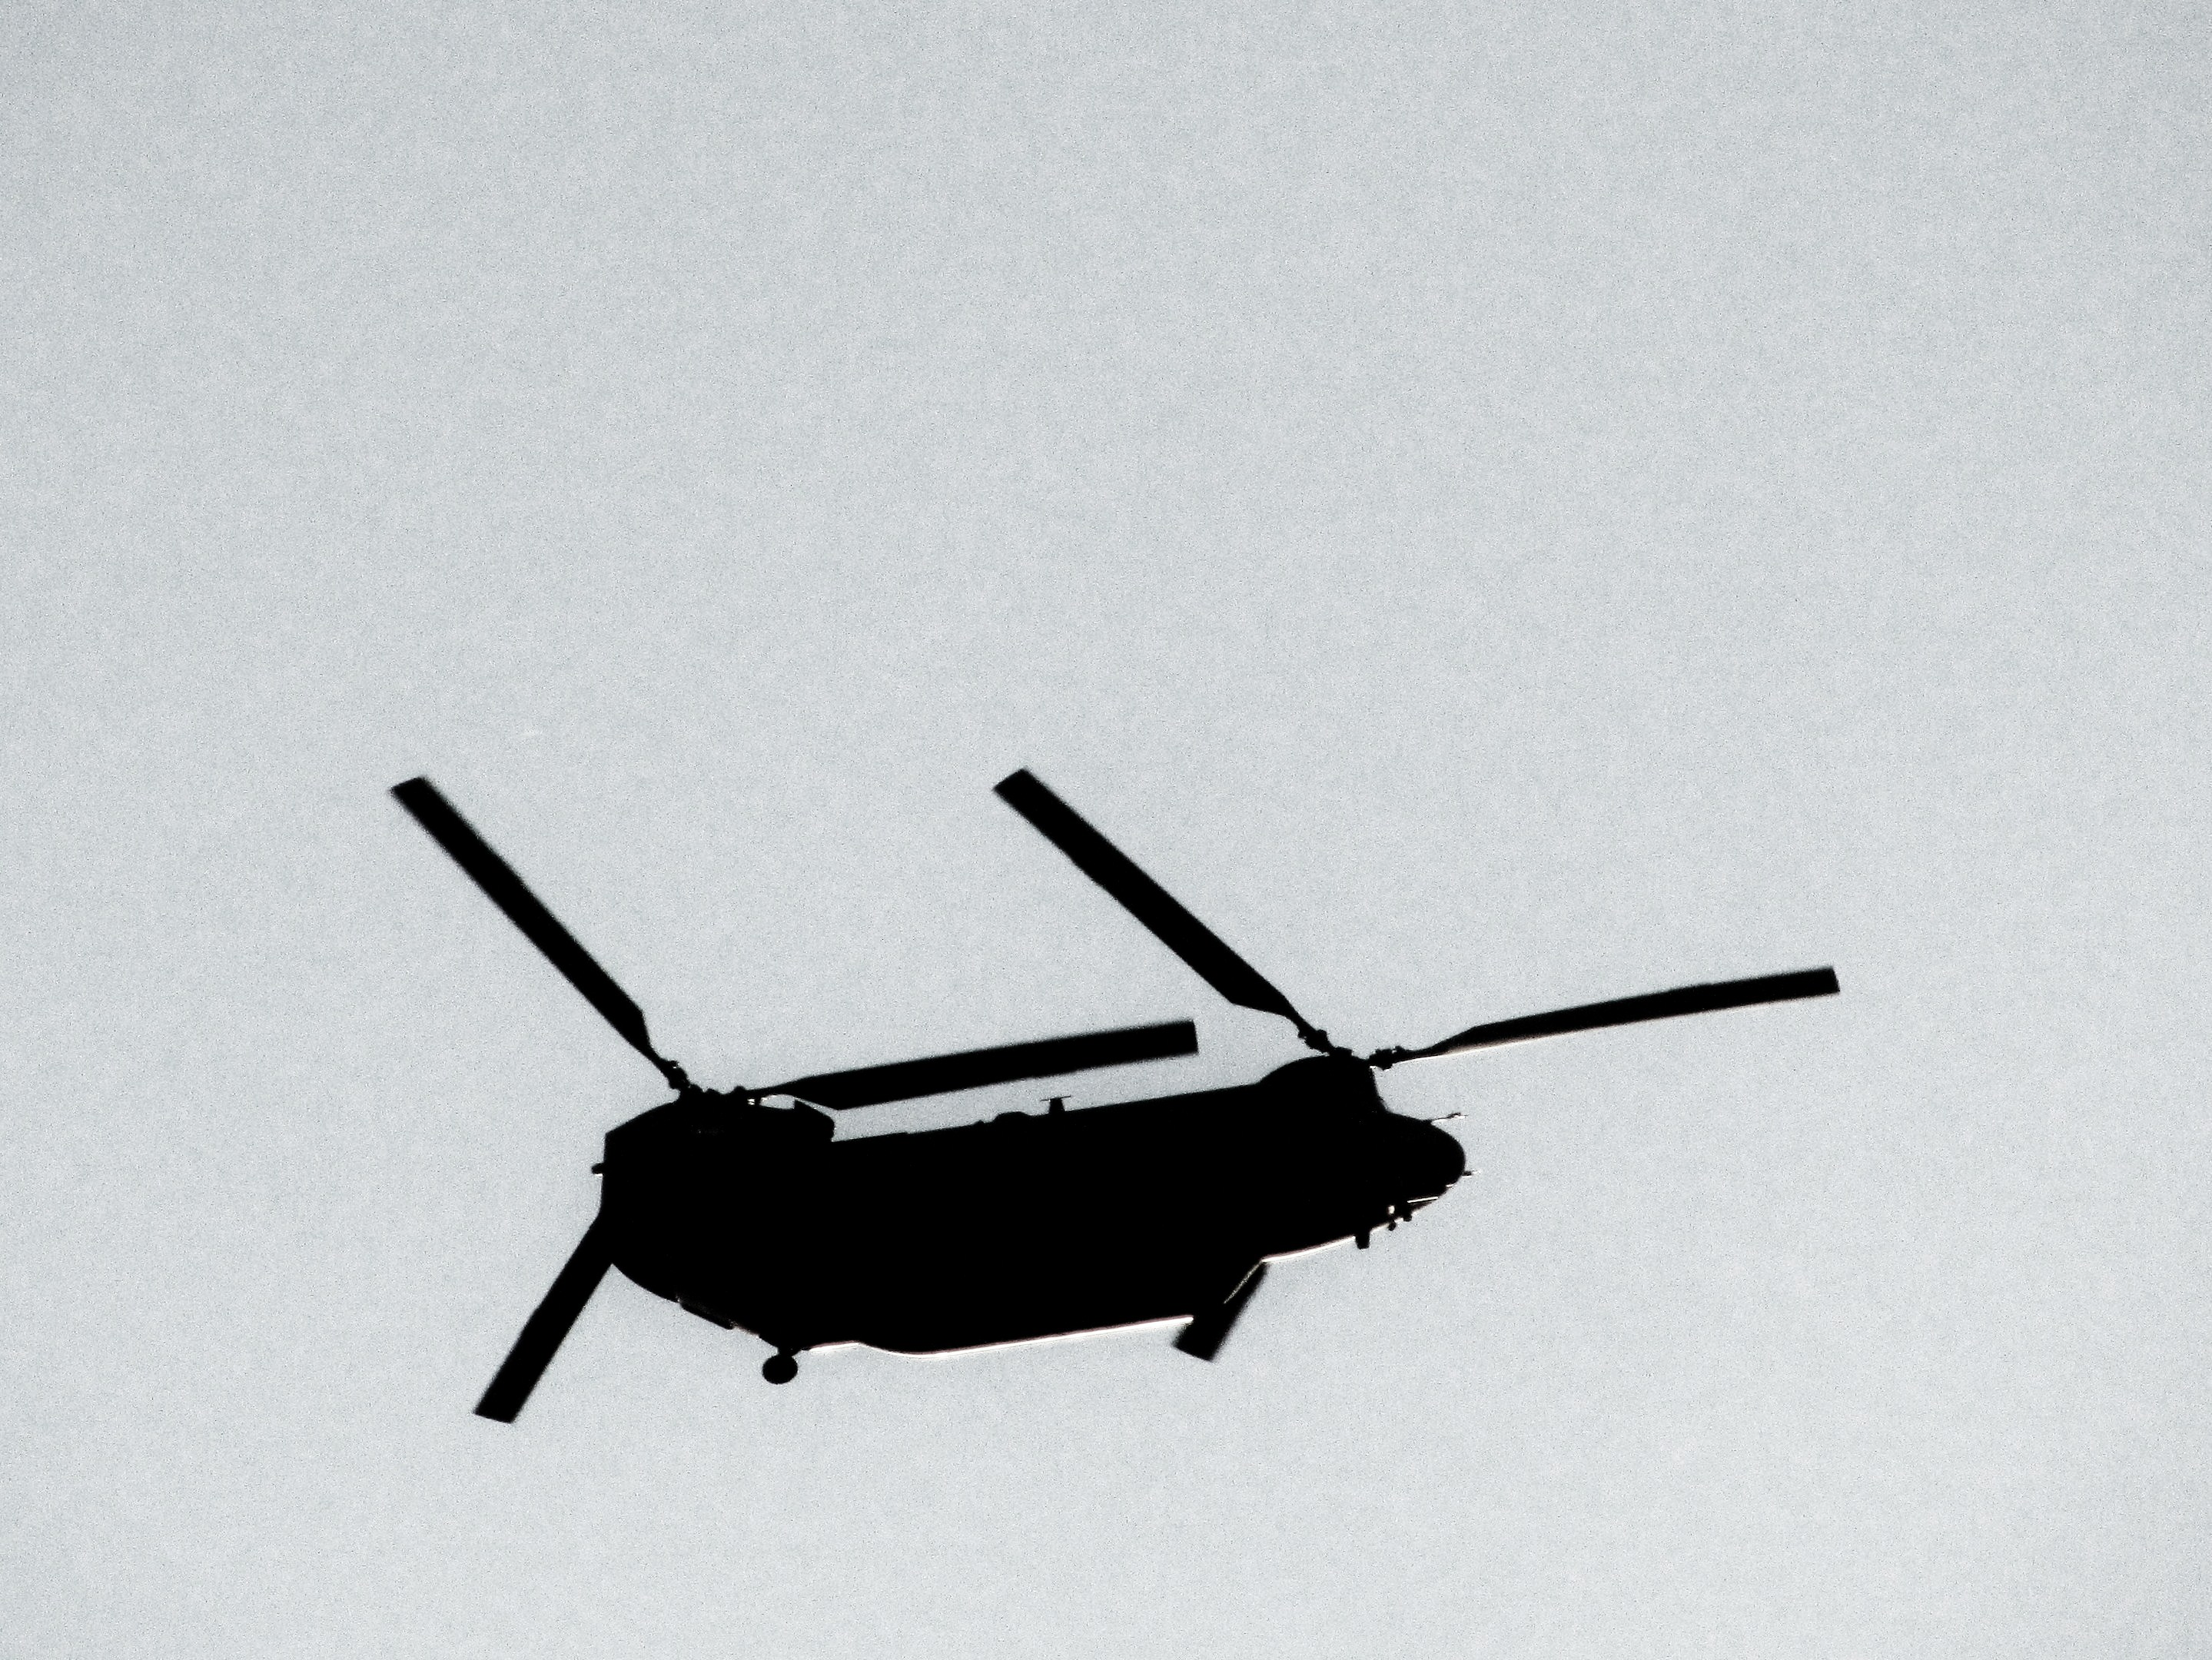 The Black Helicopters ...